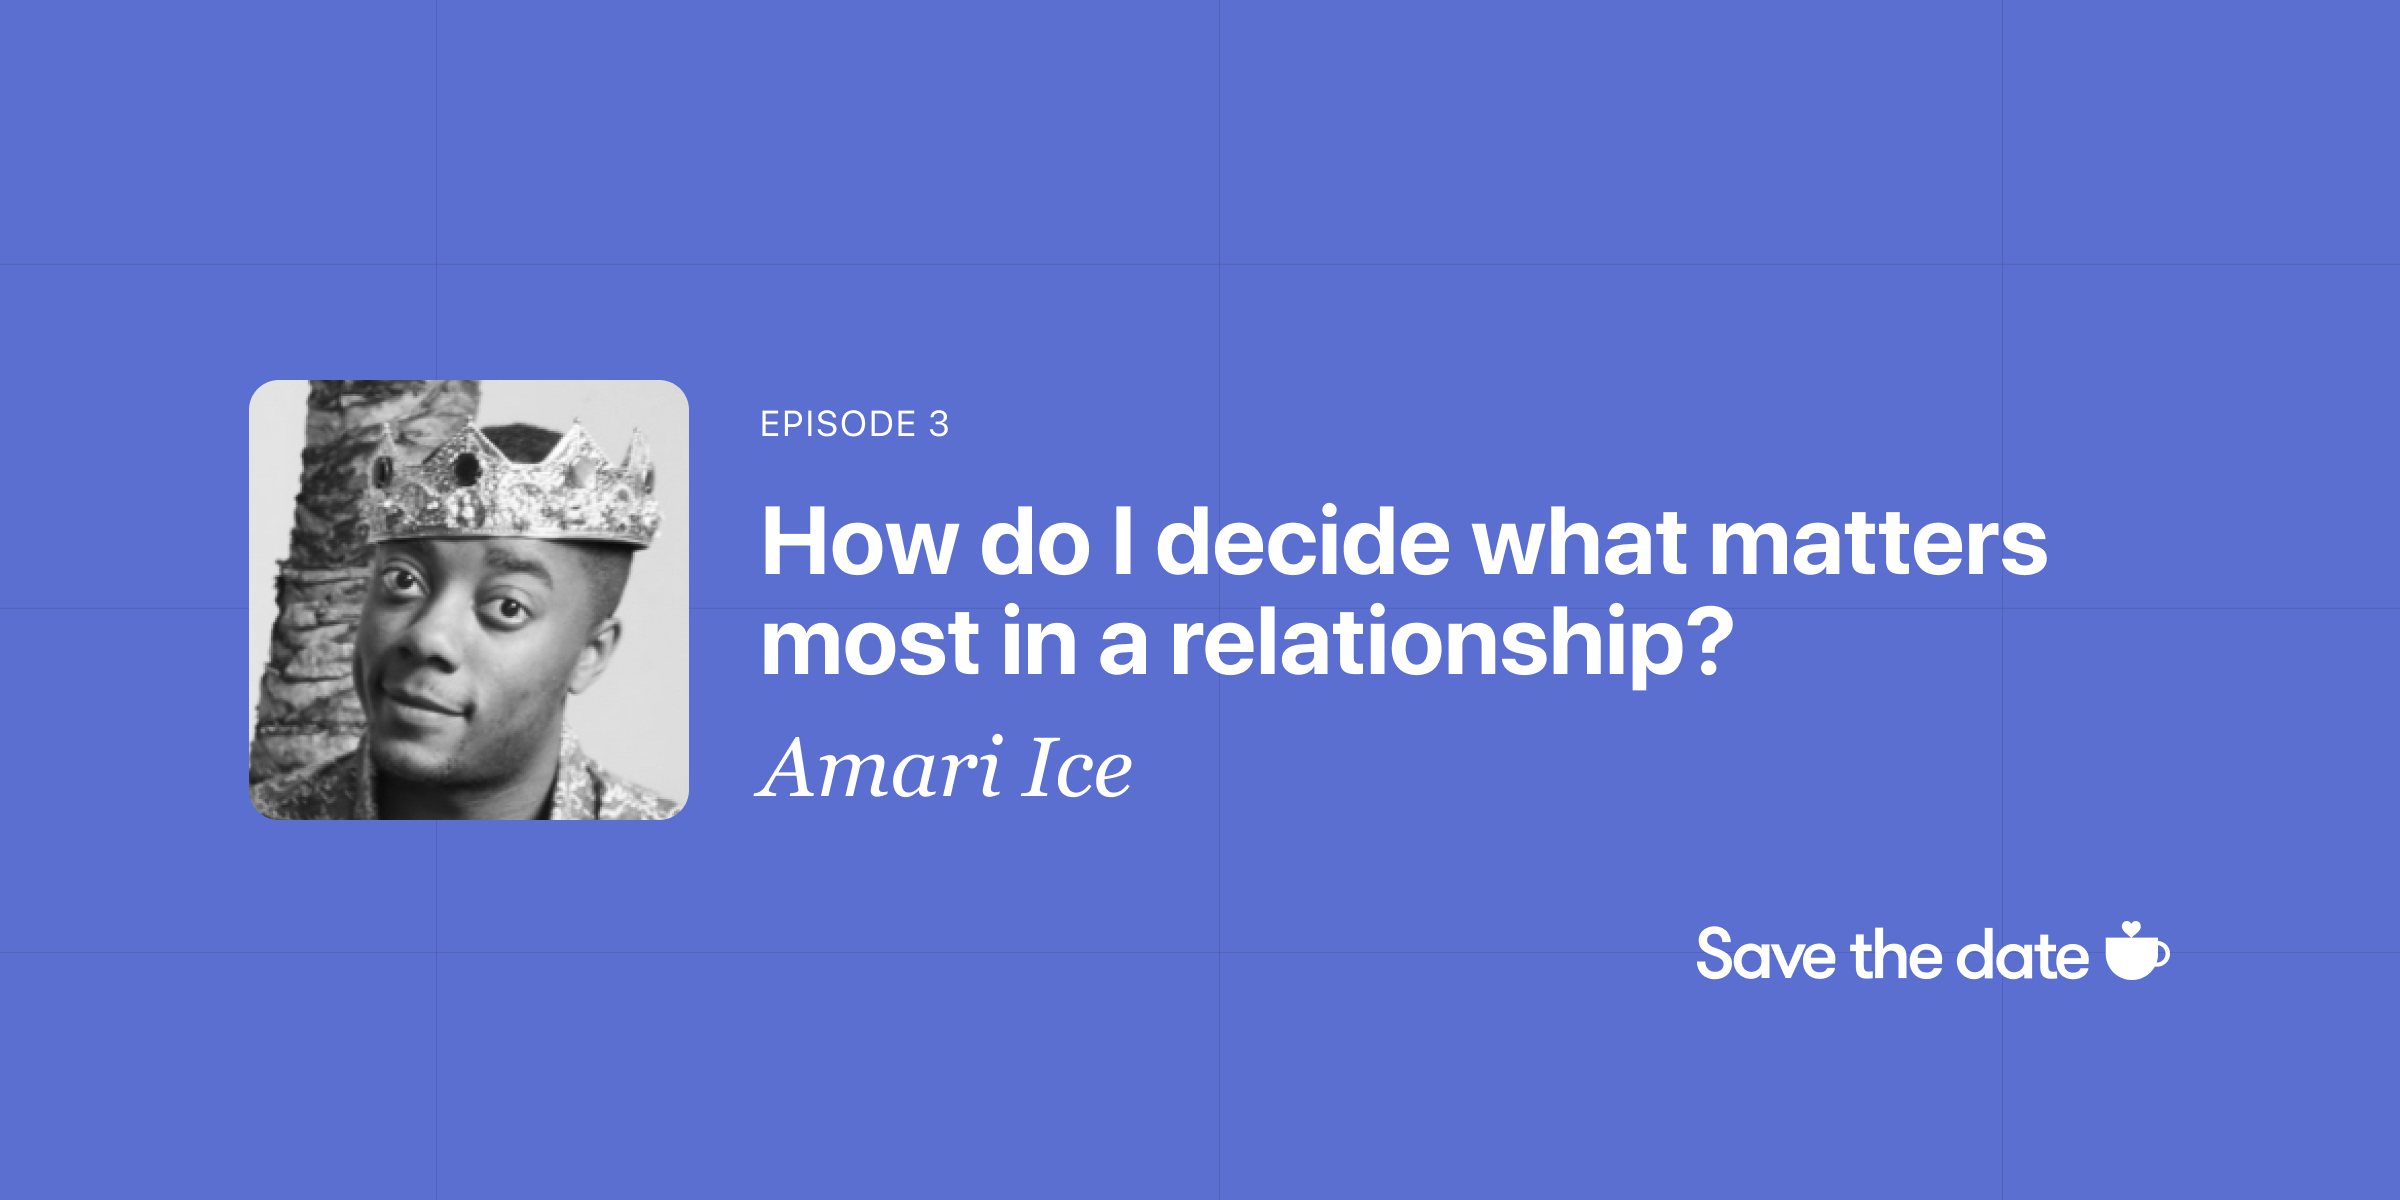 Amari Ice, Episode 3